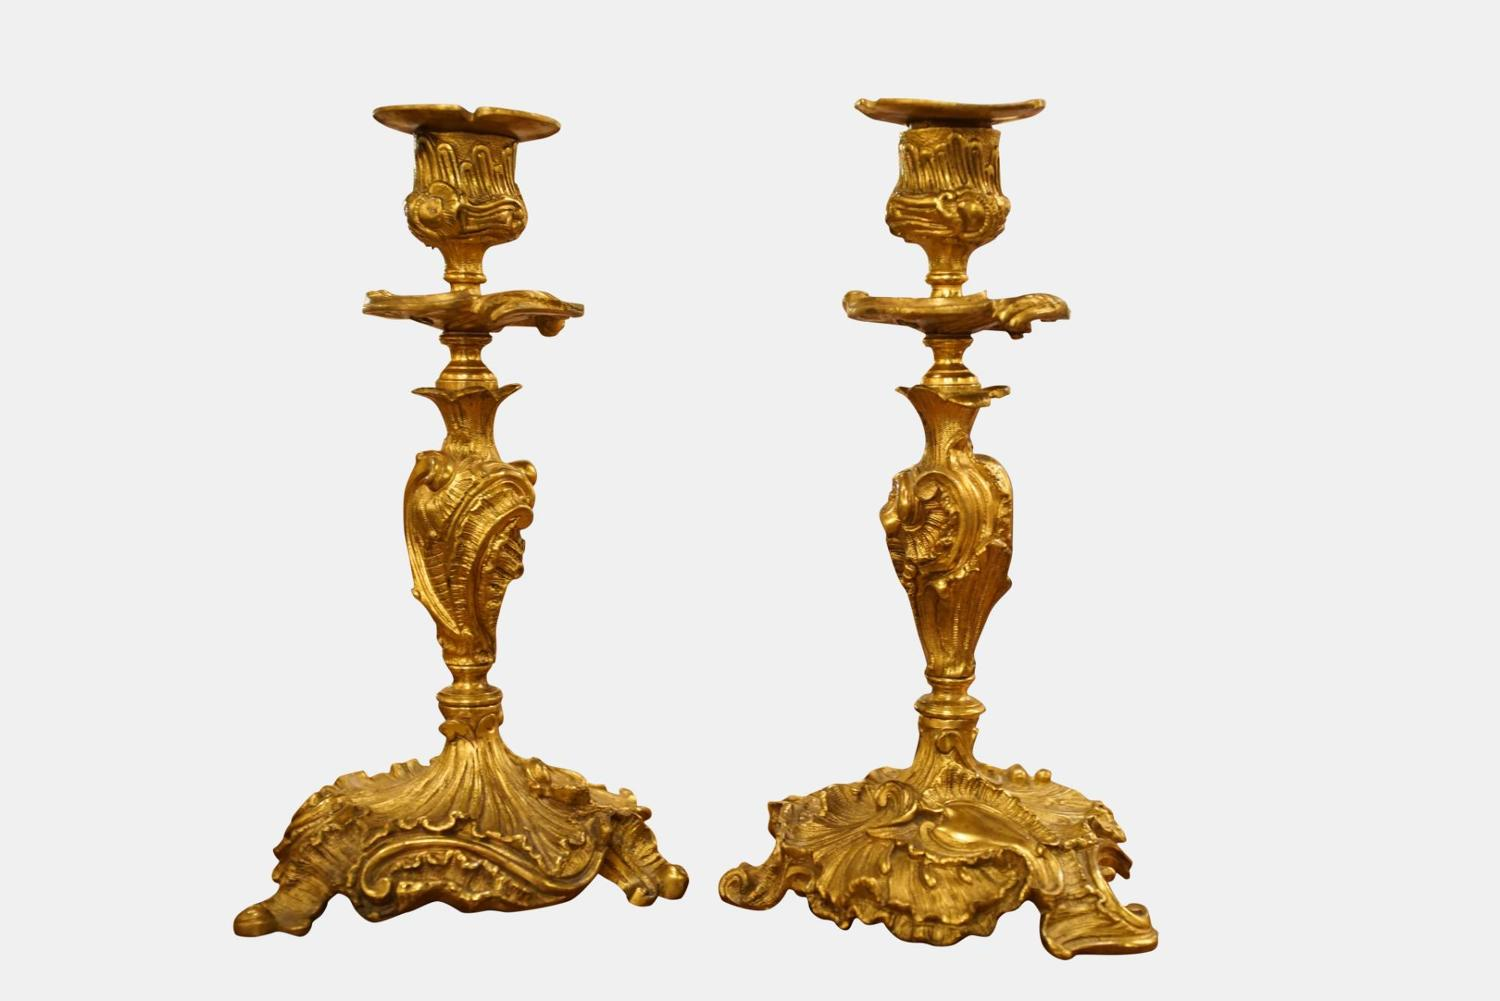 Pair of Louis XV Style Gilt Bronze Candlesticks